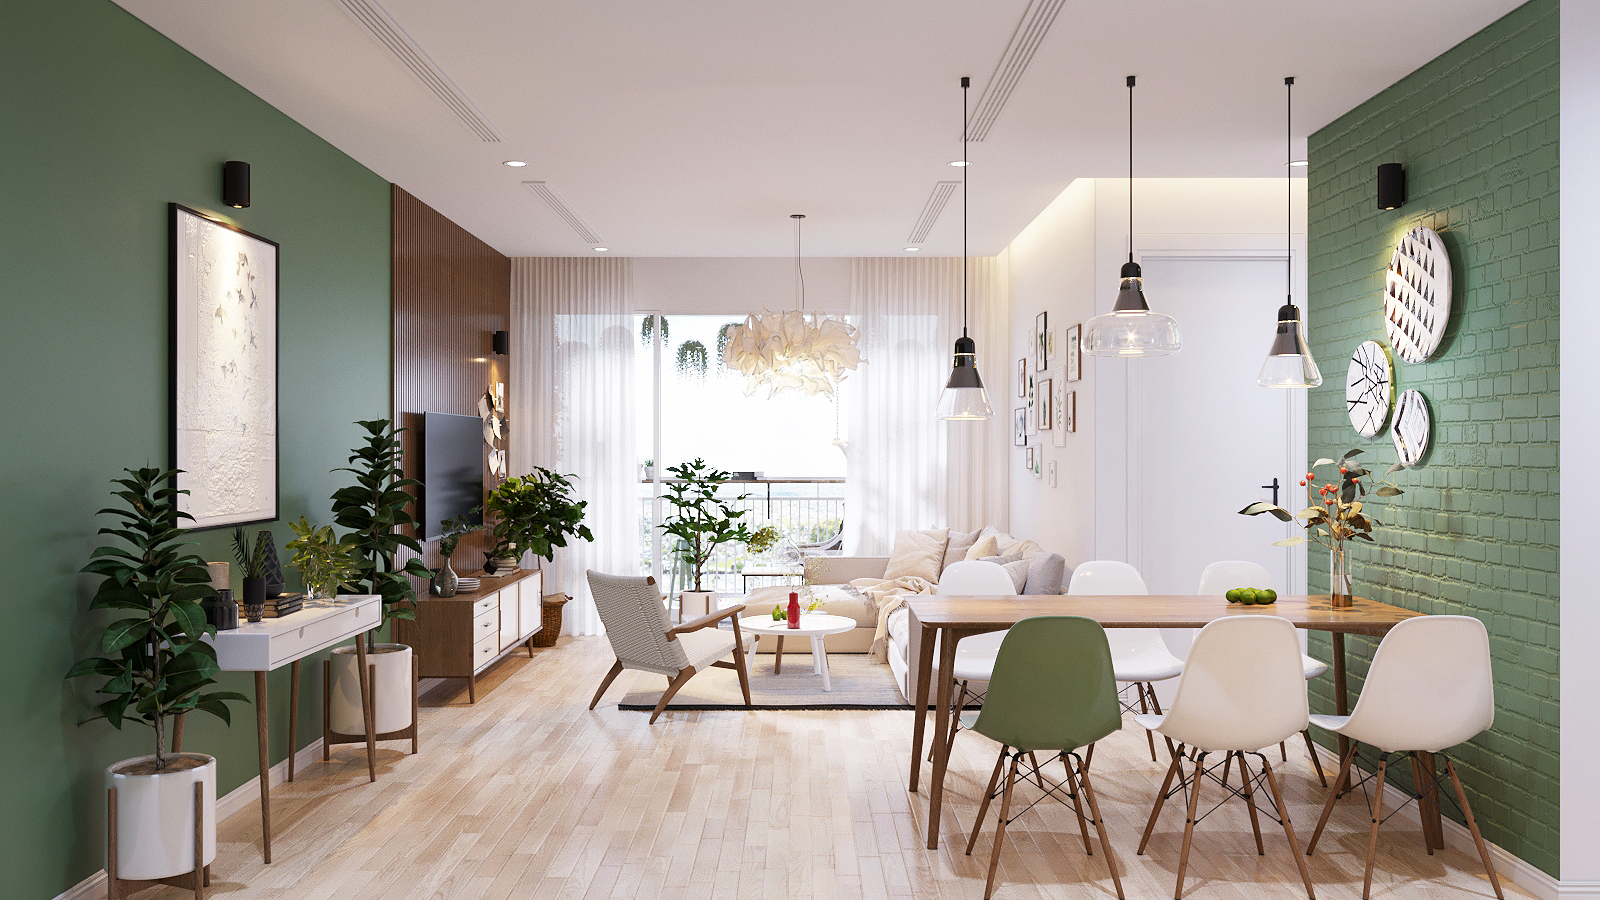 How To Add Function And Practicality To The Family Home